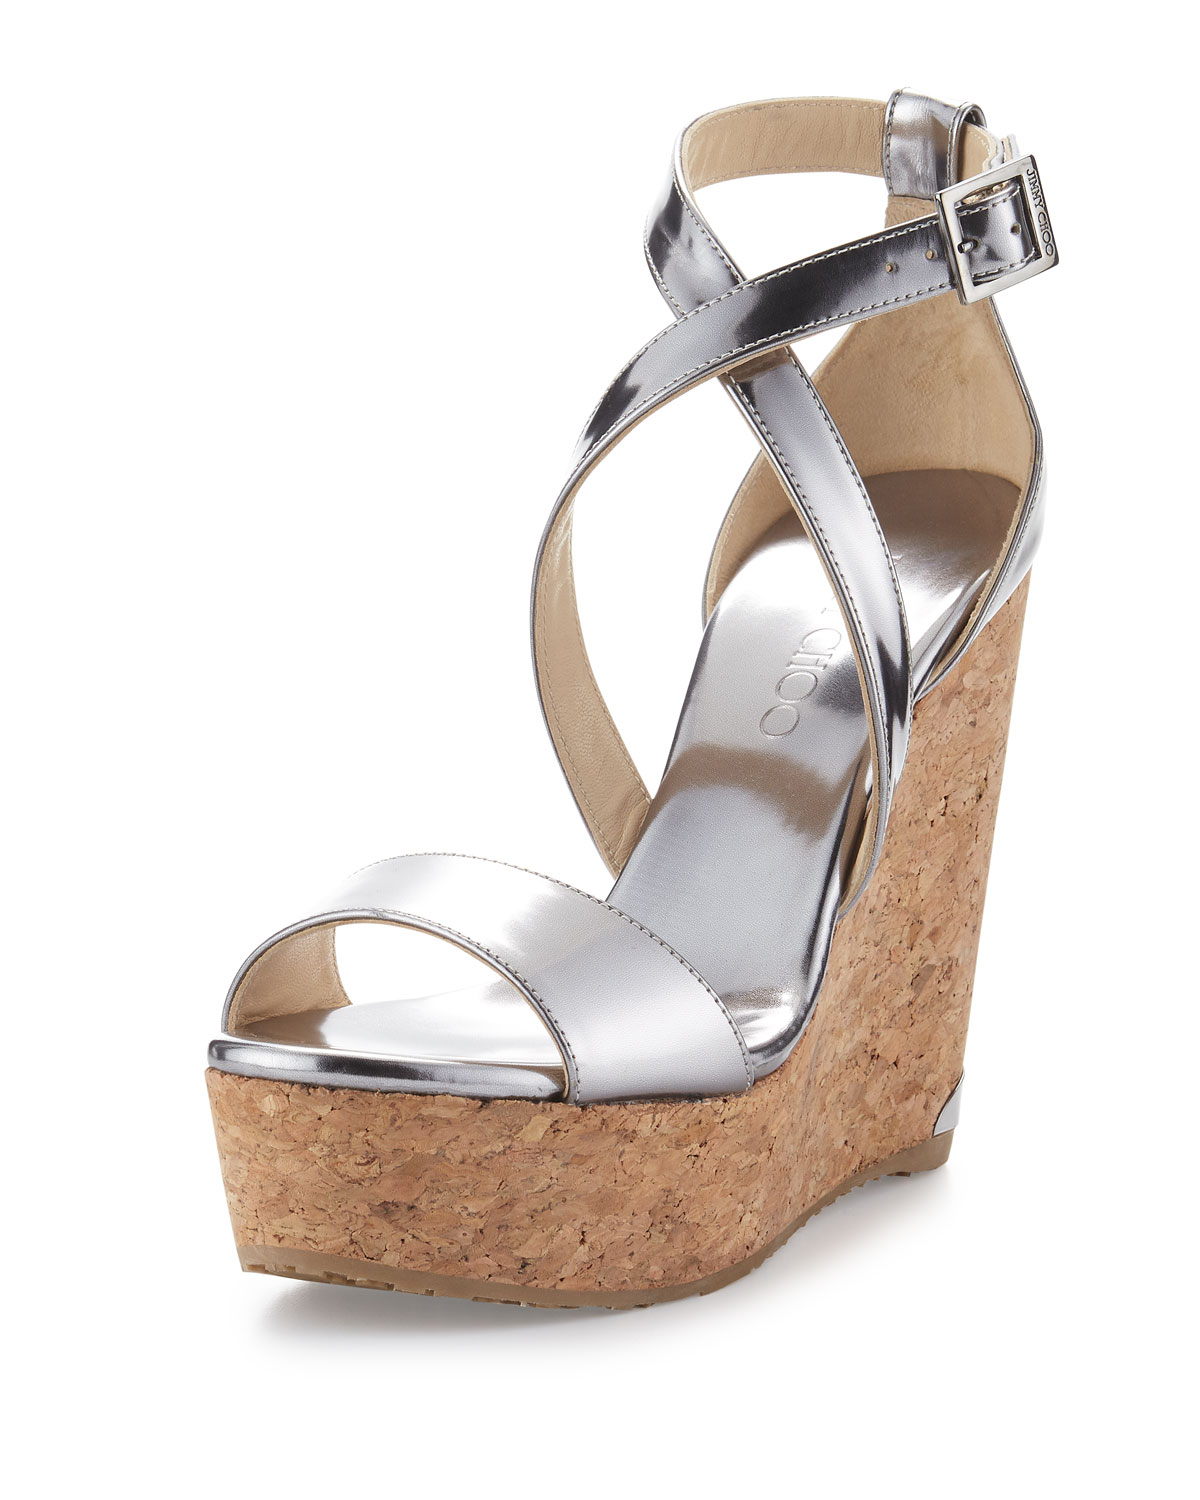 c604b12ad3d Jimmy Choo Portia Metallic Crisscross Wedge Sandal